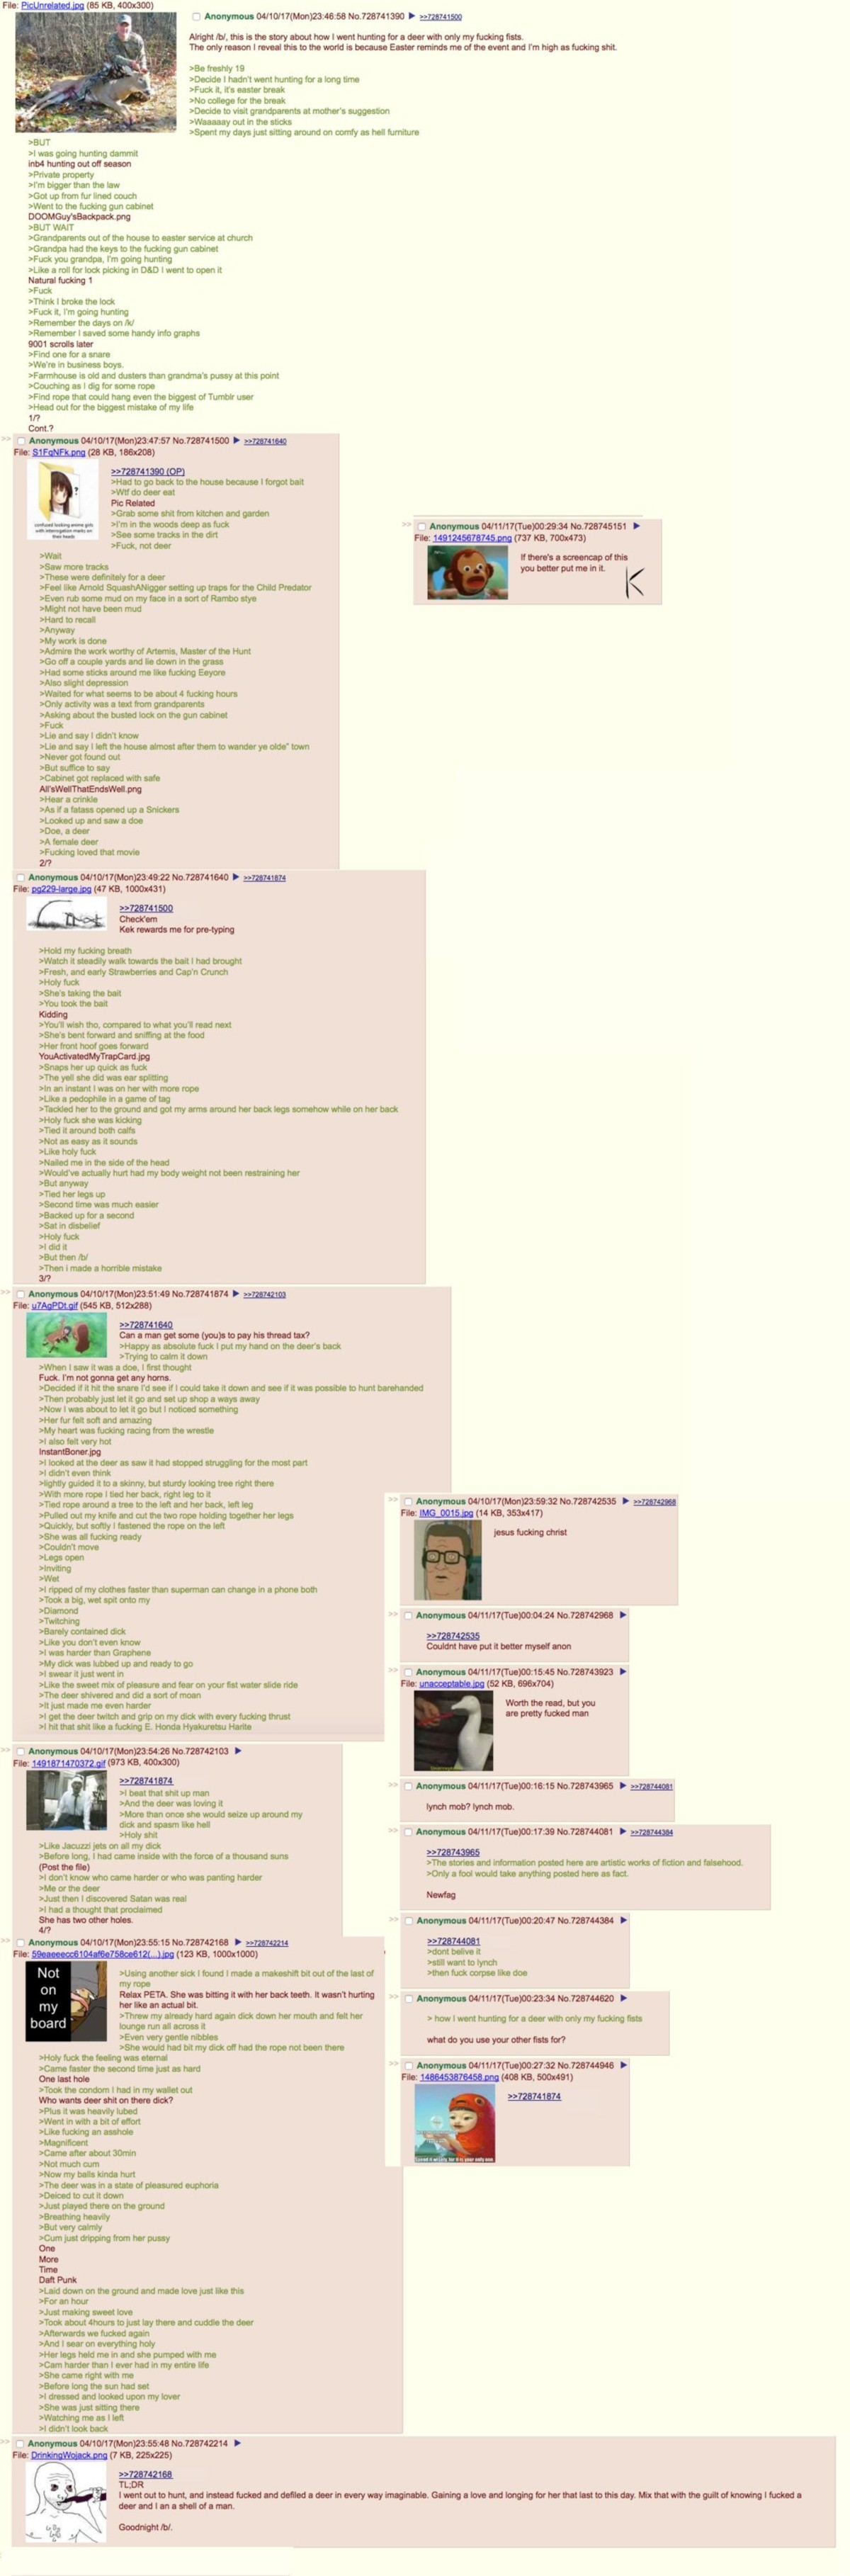 Anon goes hunting. join list: Chanoholic (310 subs)Mention History.. Deer lord.